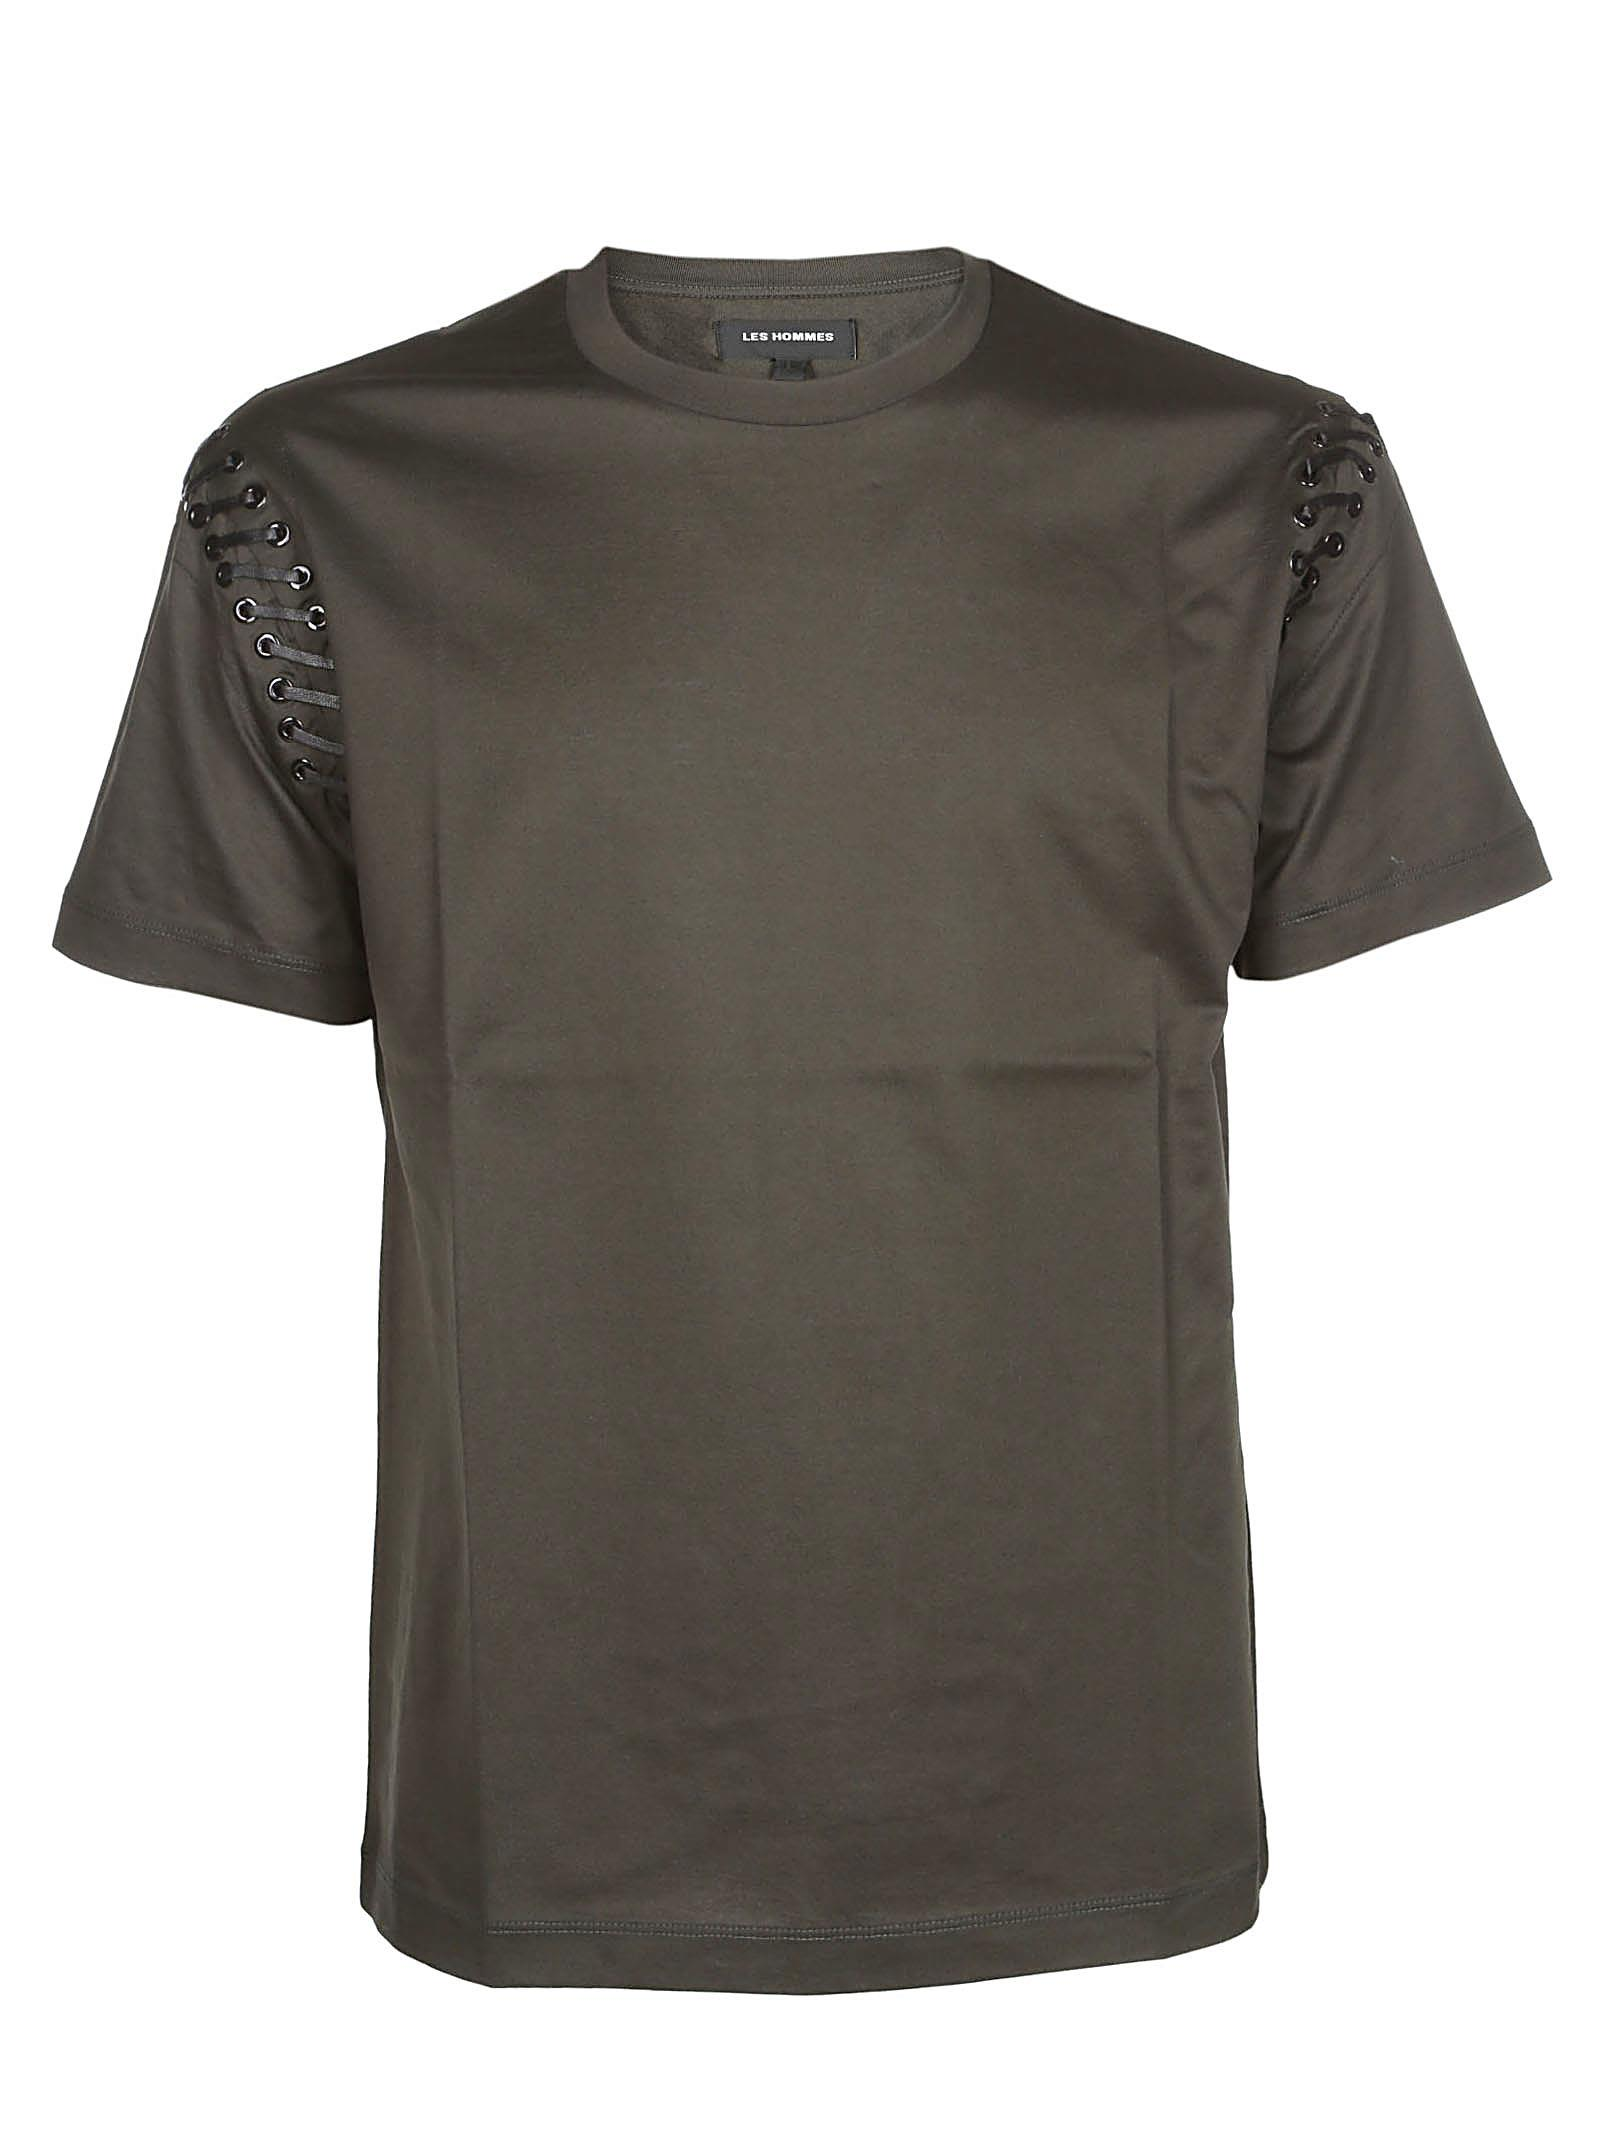 LES HOMMES LACE-UP SLEEVE T-SHIRT